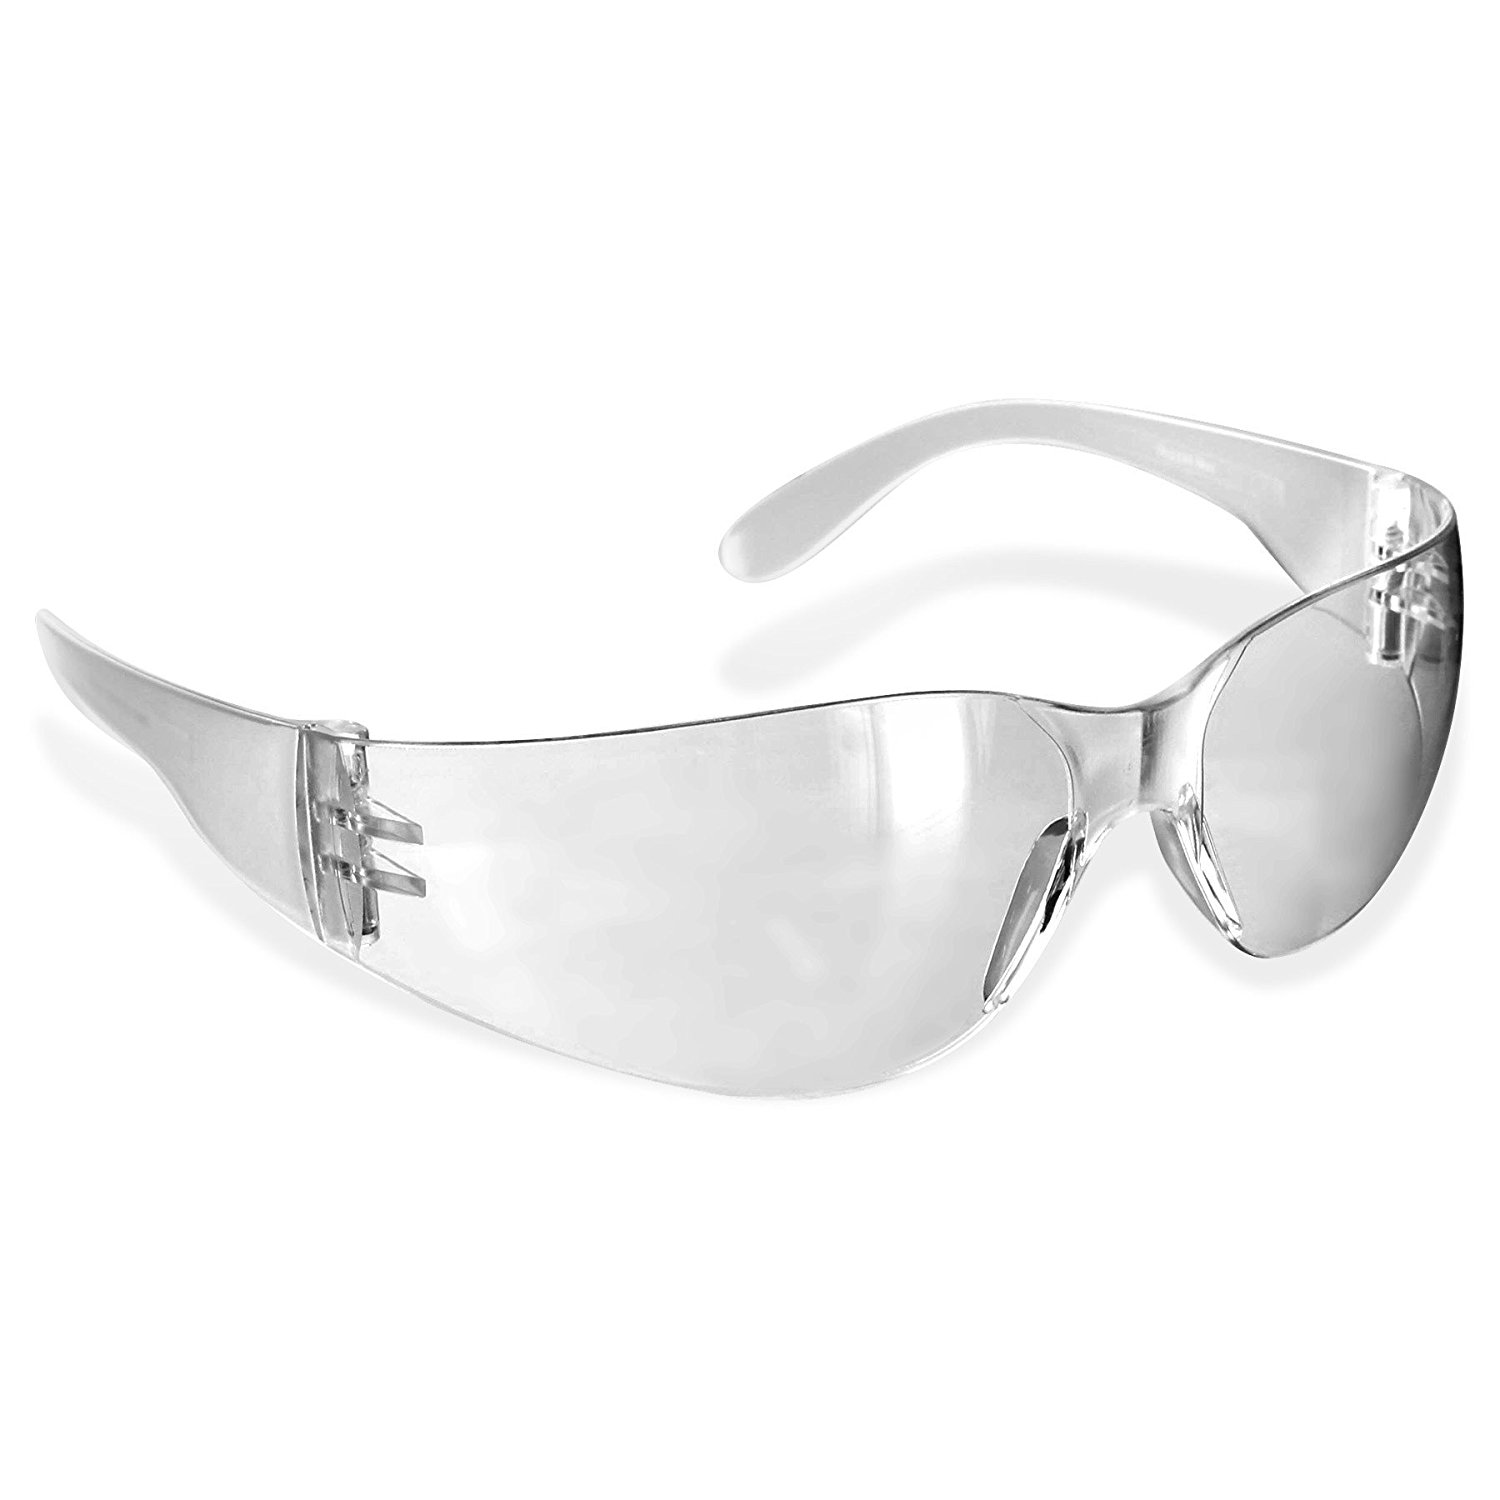 d3b21c21cc13 Rugged Blue Mojave Safety Glasses in Clear (12 Pack) -  OSSG-SFTEYSG1000025677